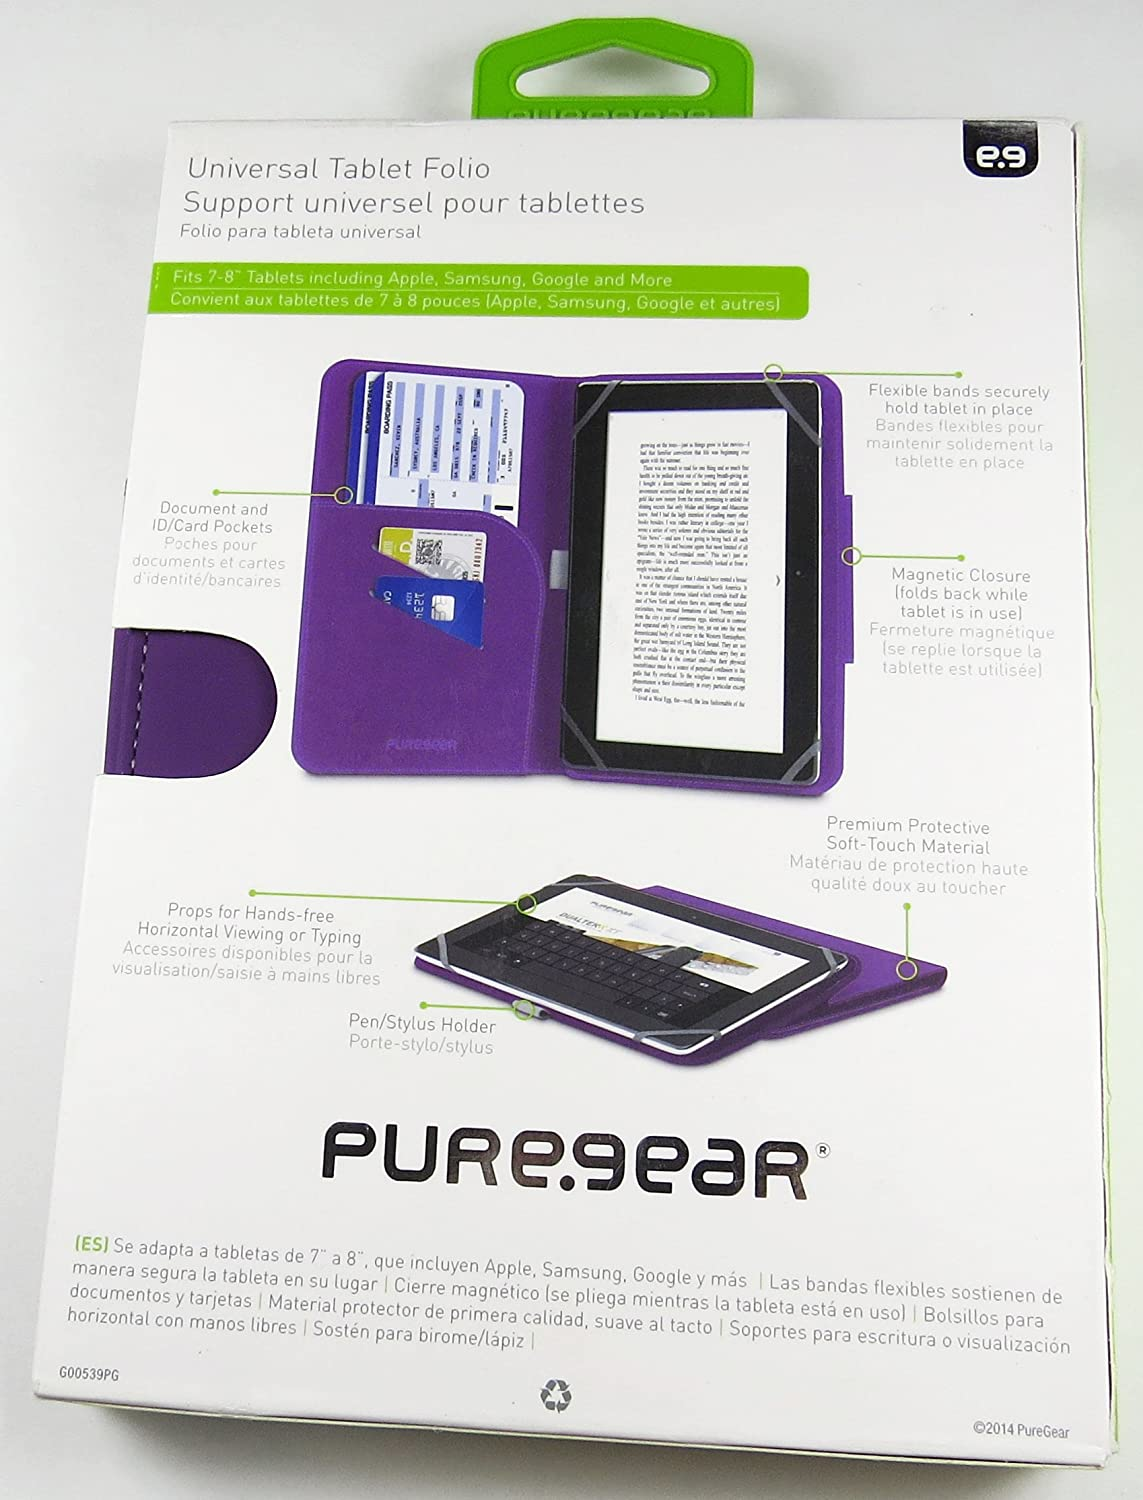 Puregear Universal 7-8 inch Universal Tablet Folio Case with magnetic closure, pen holder, and document/ID pockets in Purple